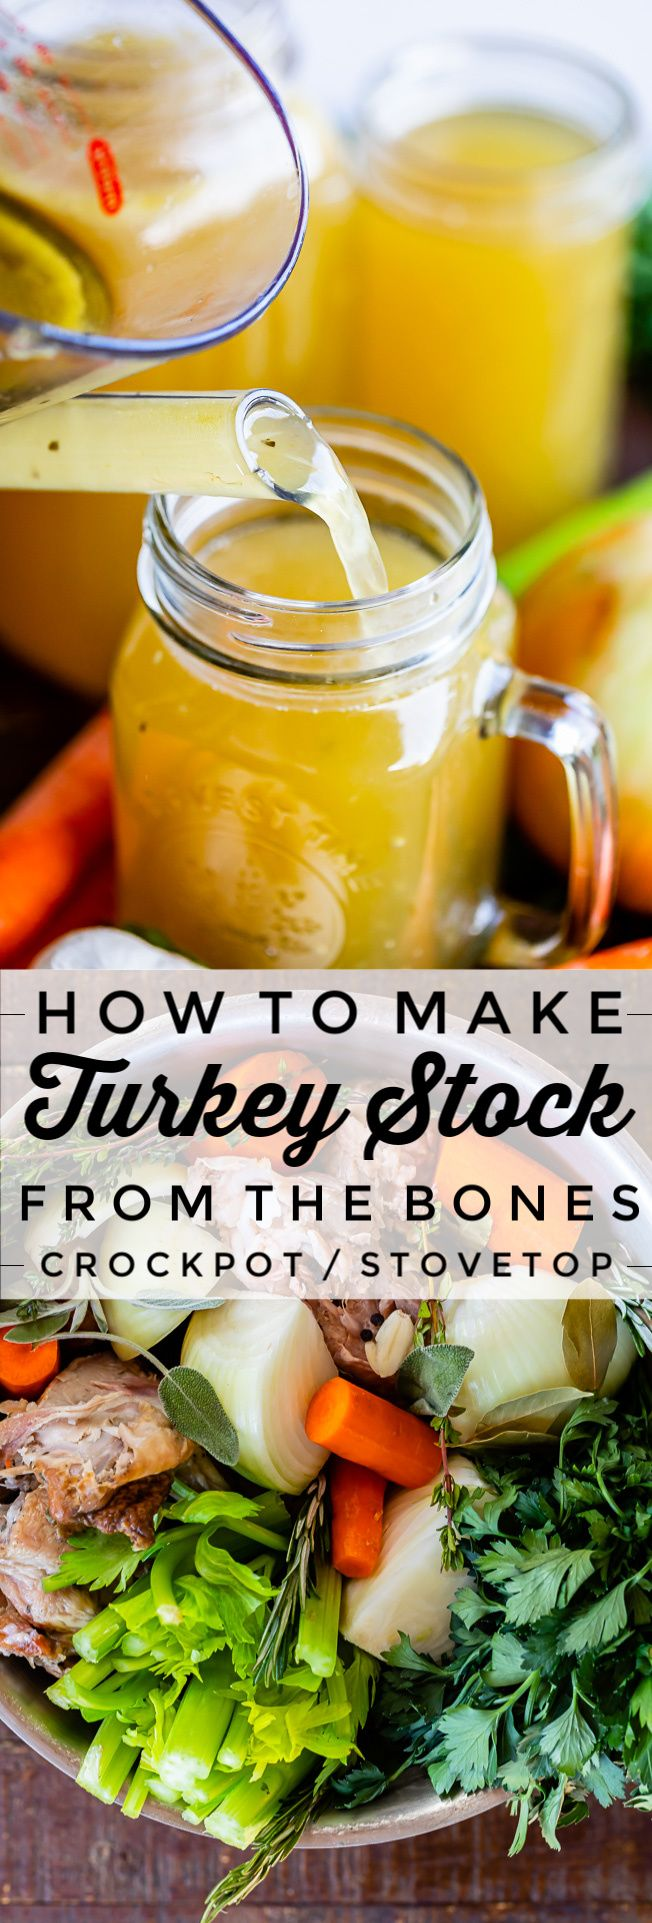 Photo of How to Make Turkey Stock from the Bones from The Food Charlatan